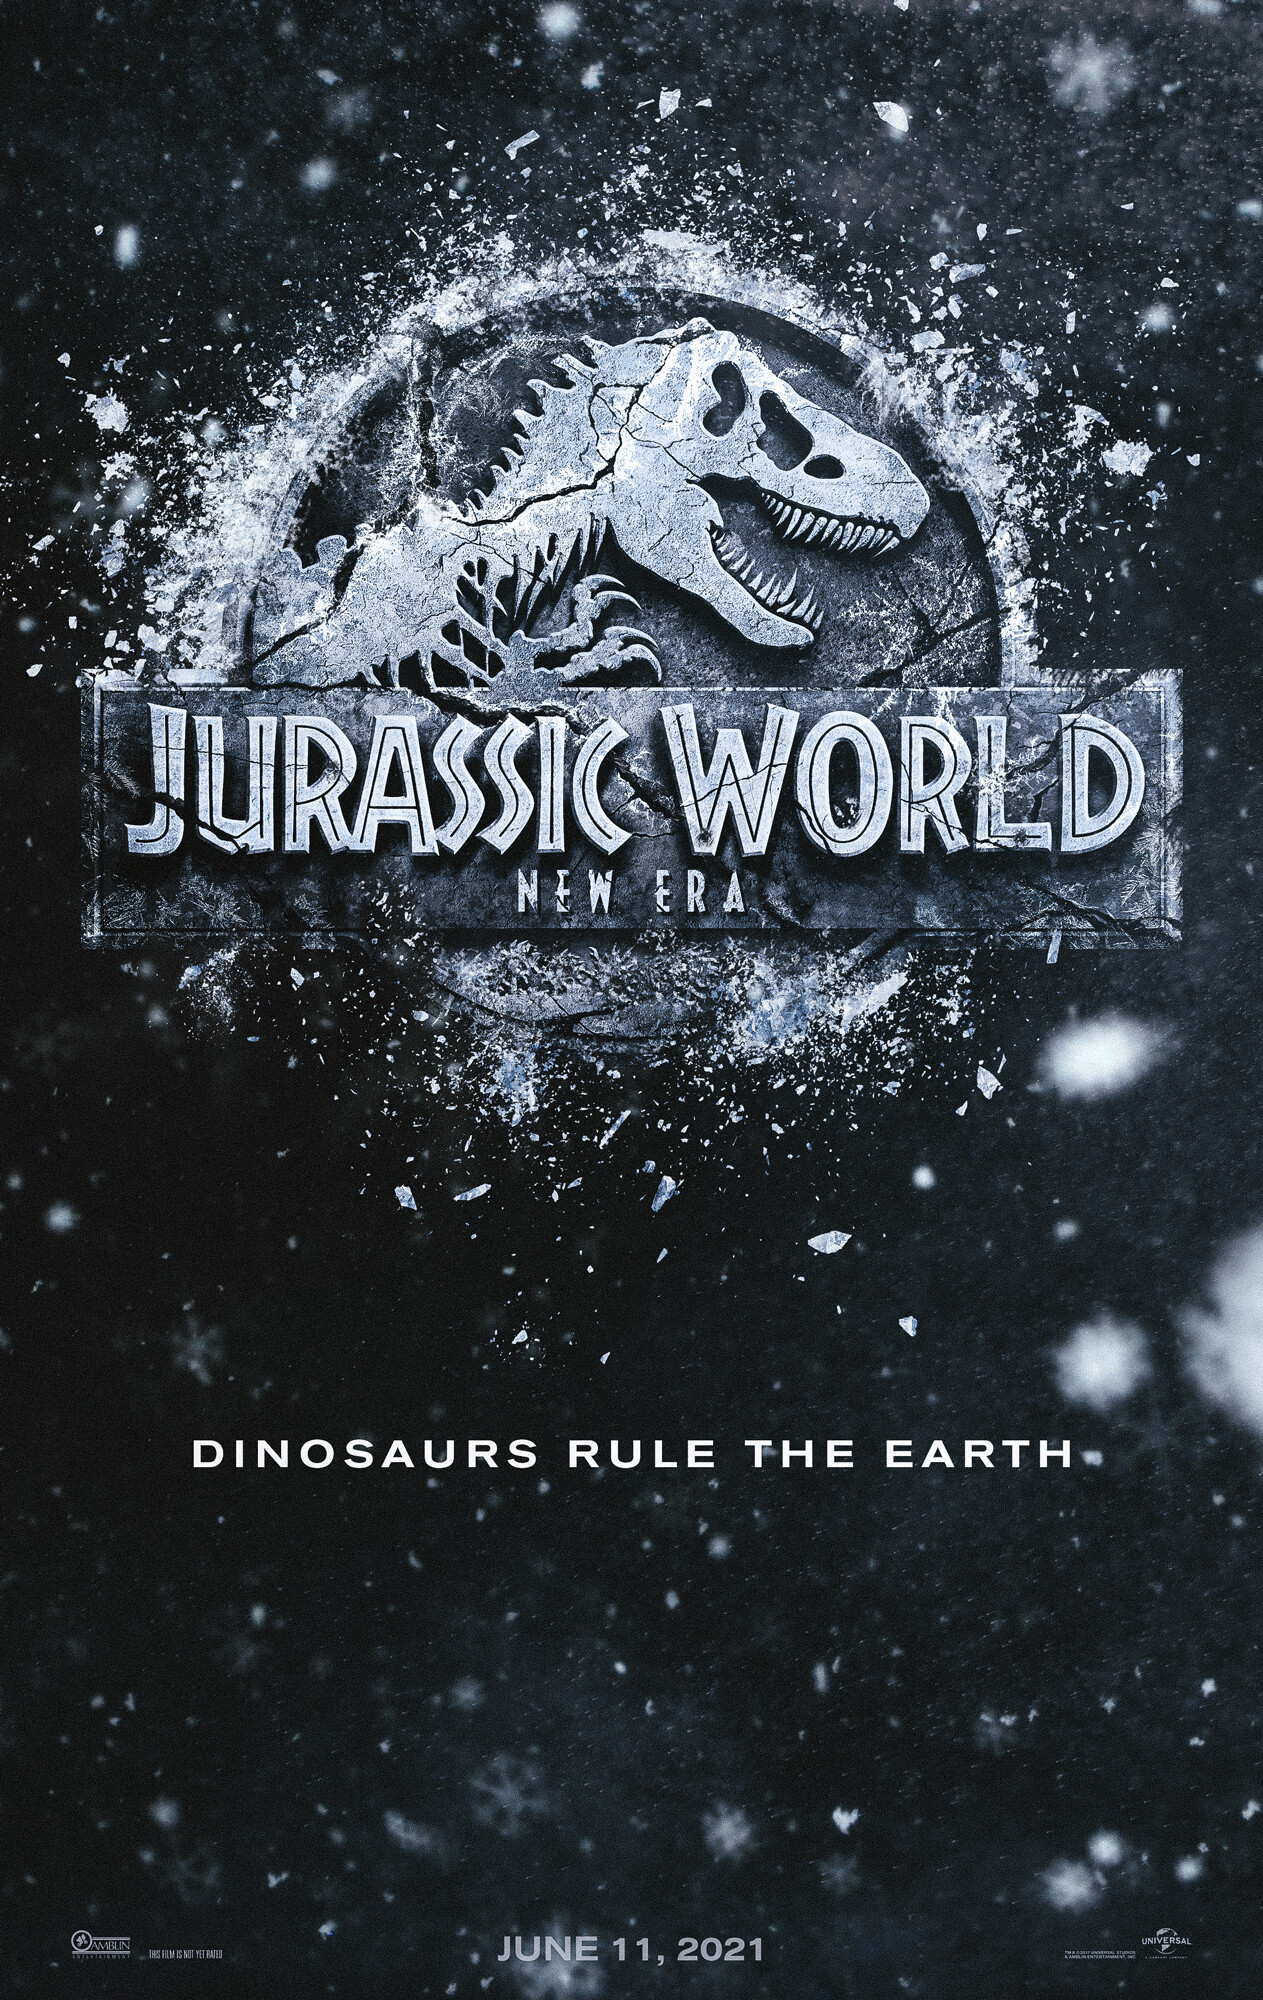 Jurassic World 3 - Jurassic World New Era - Movie Poster and Logo Concept by Neemz - The Movie Poster Guy